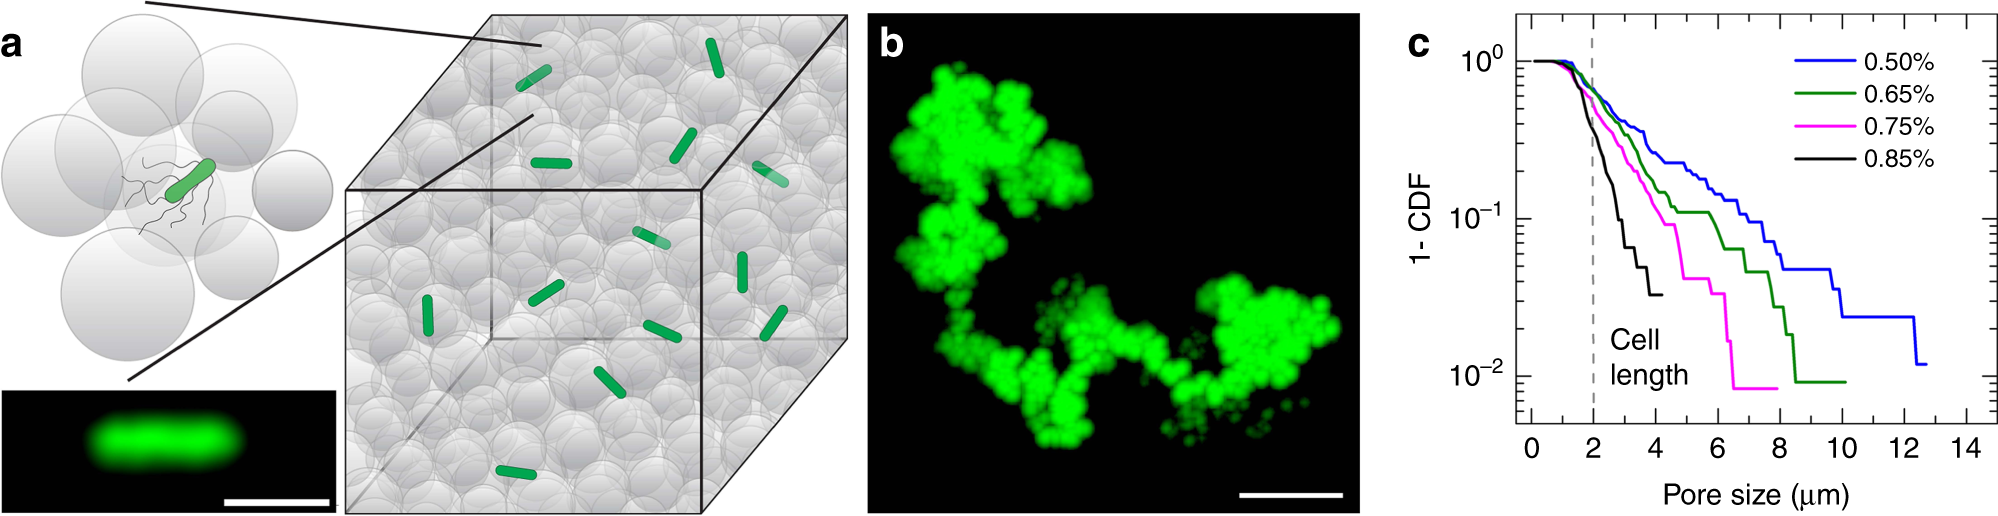 Bacterial hopping and trapping in porous media | Nature Communications